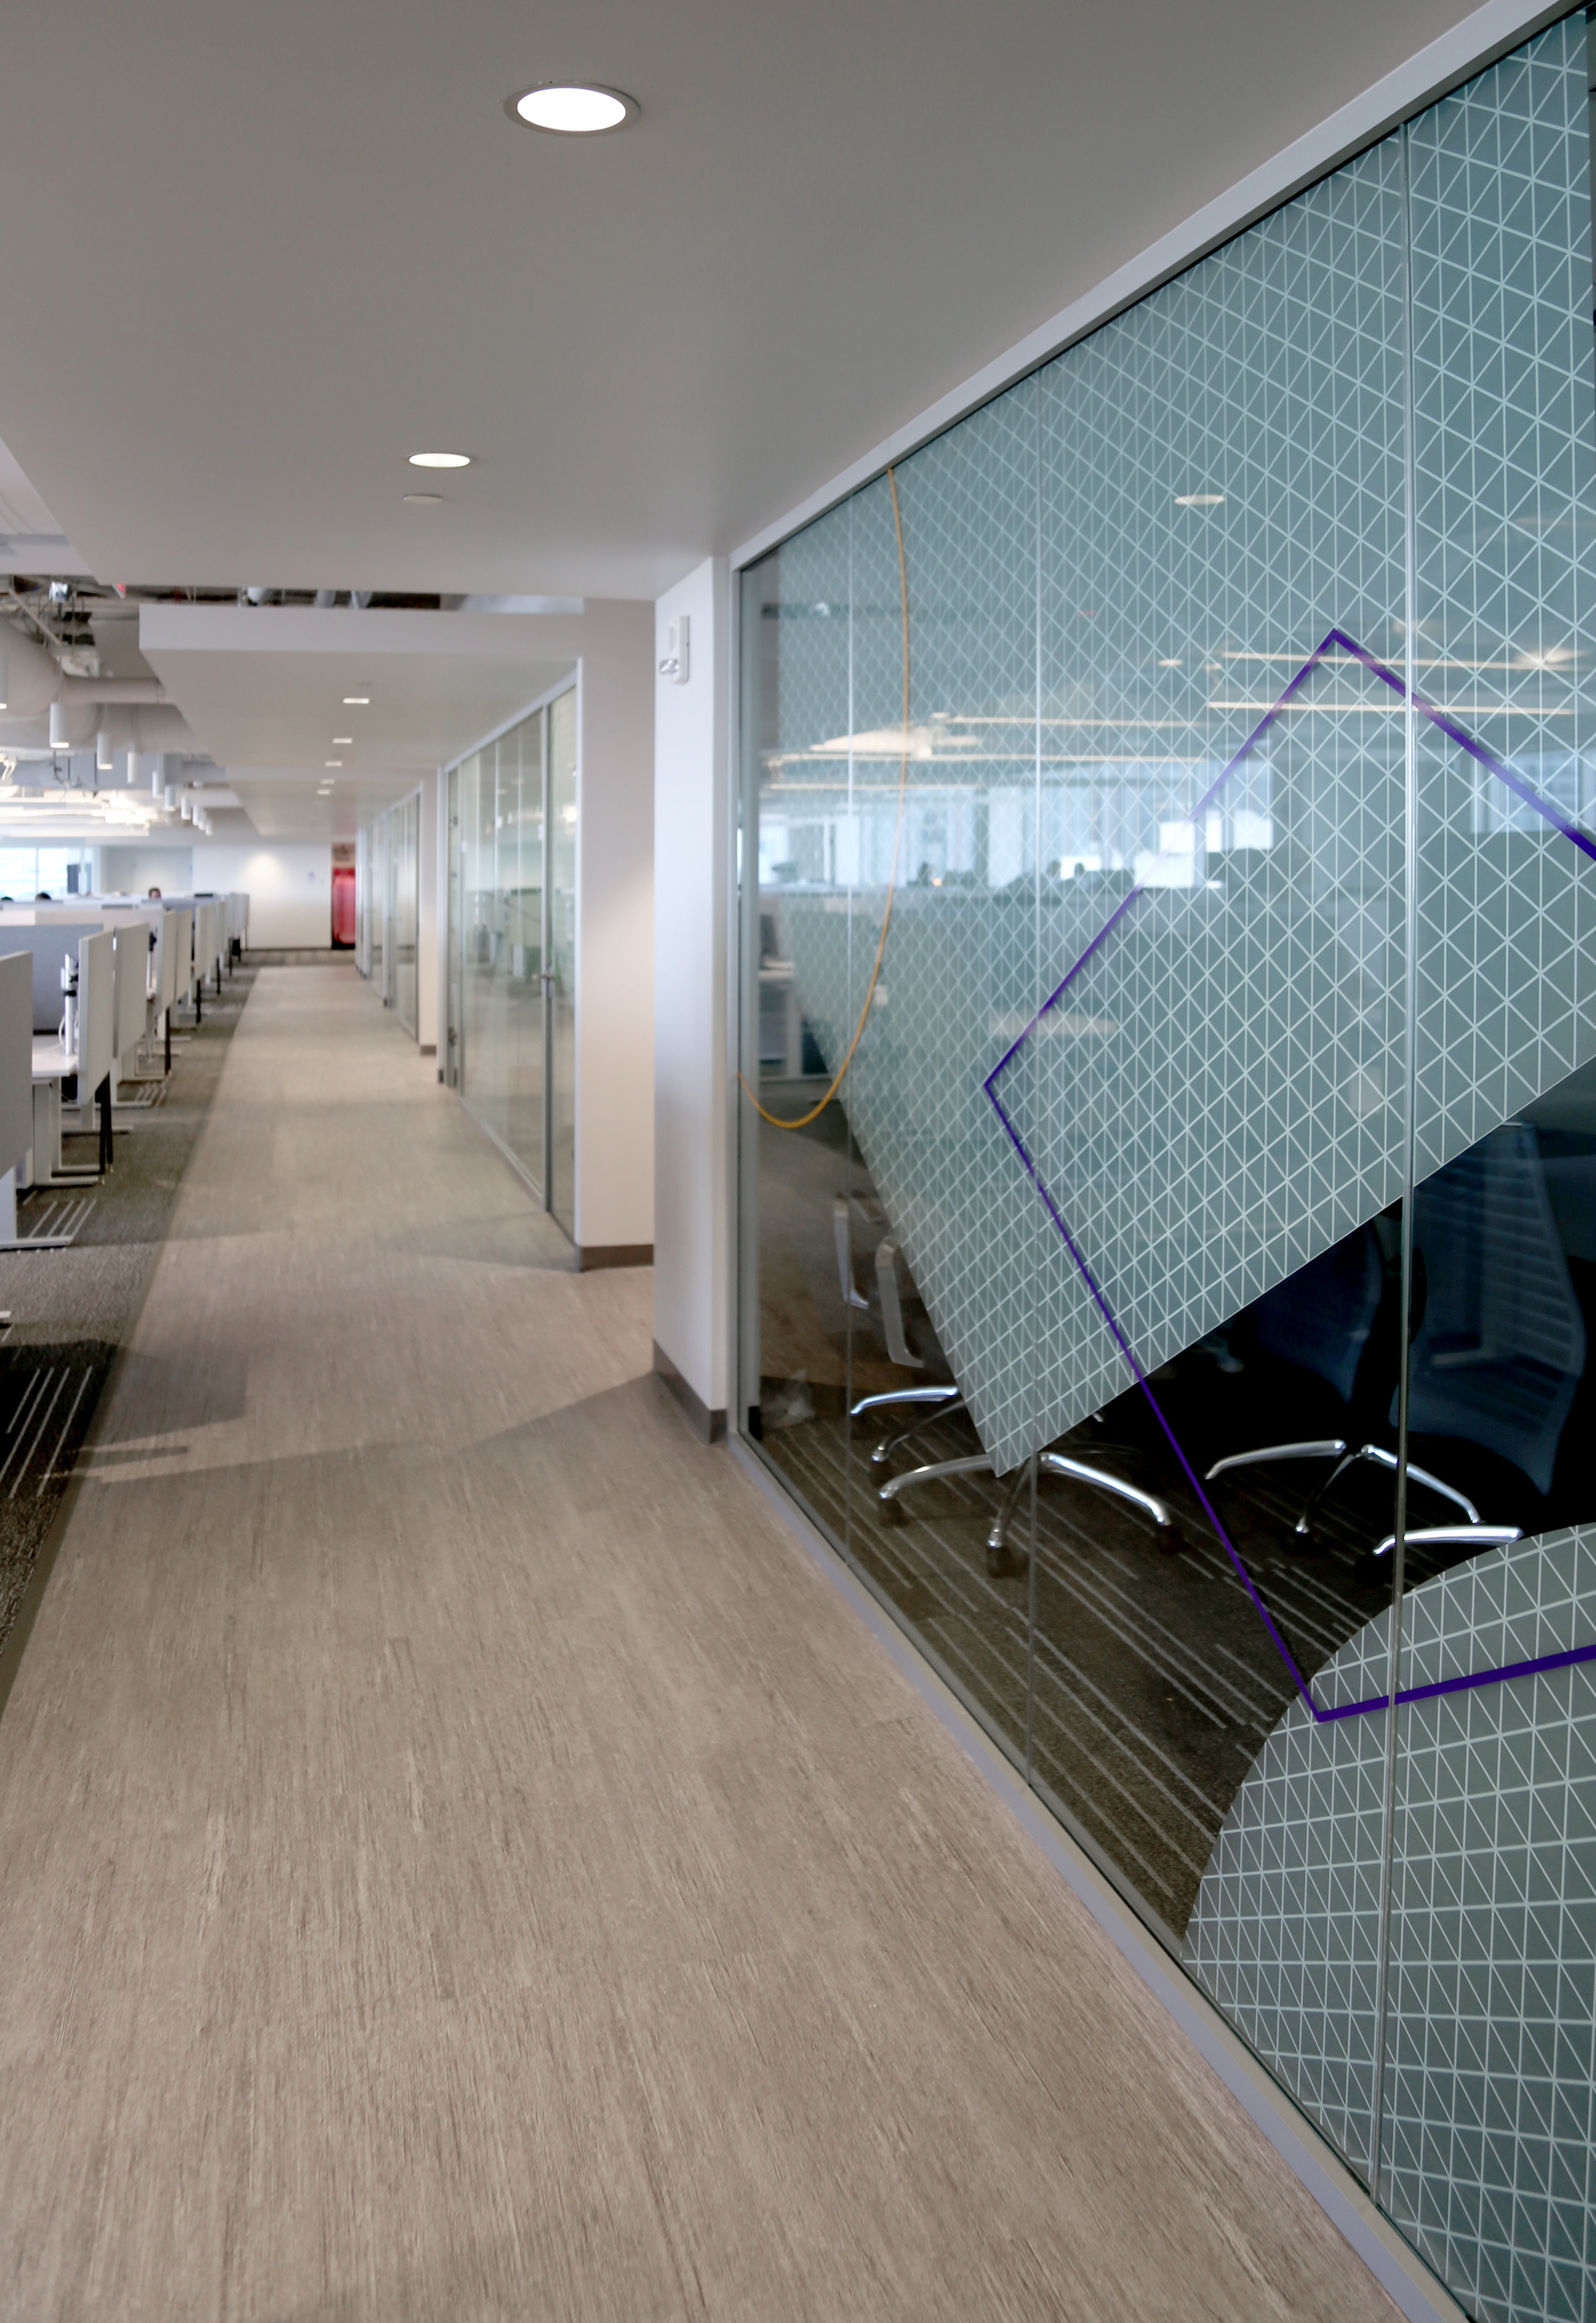 Litespace Aluminum Framed Demountable Wall Glass Run - Spaceworks AI.jpg